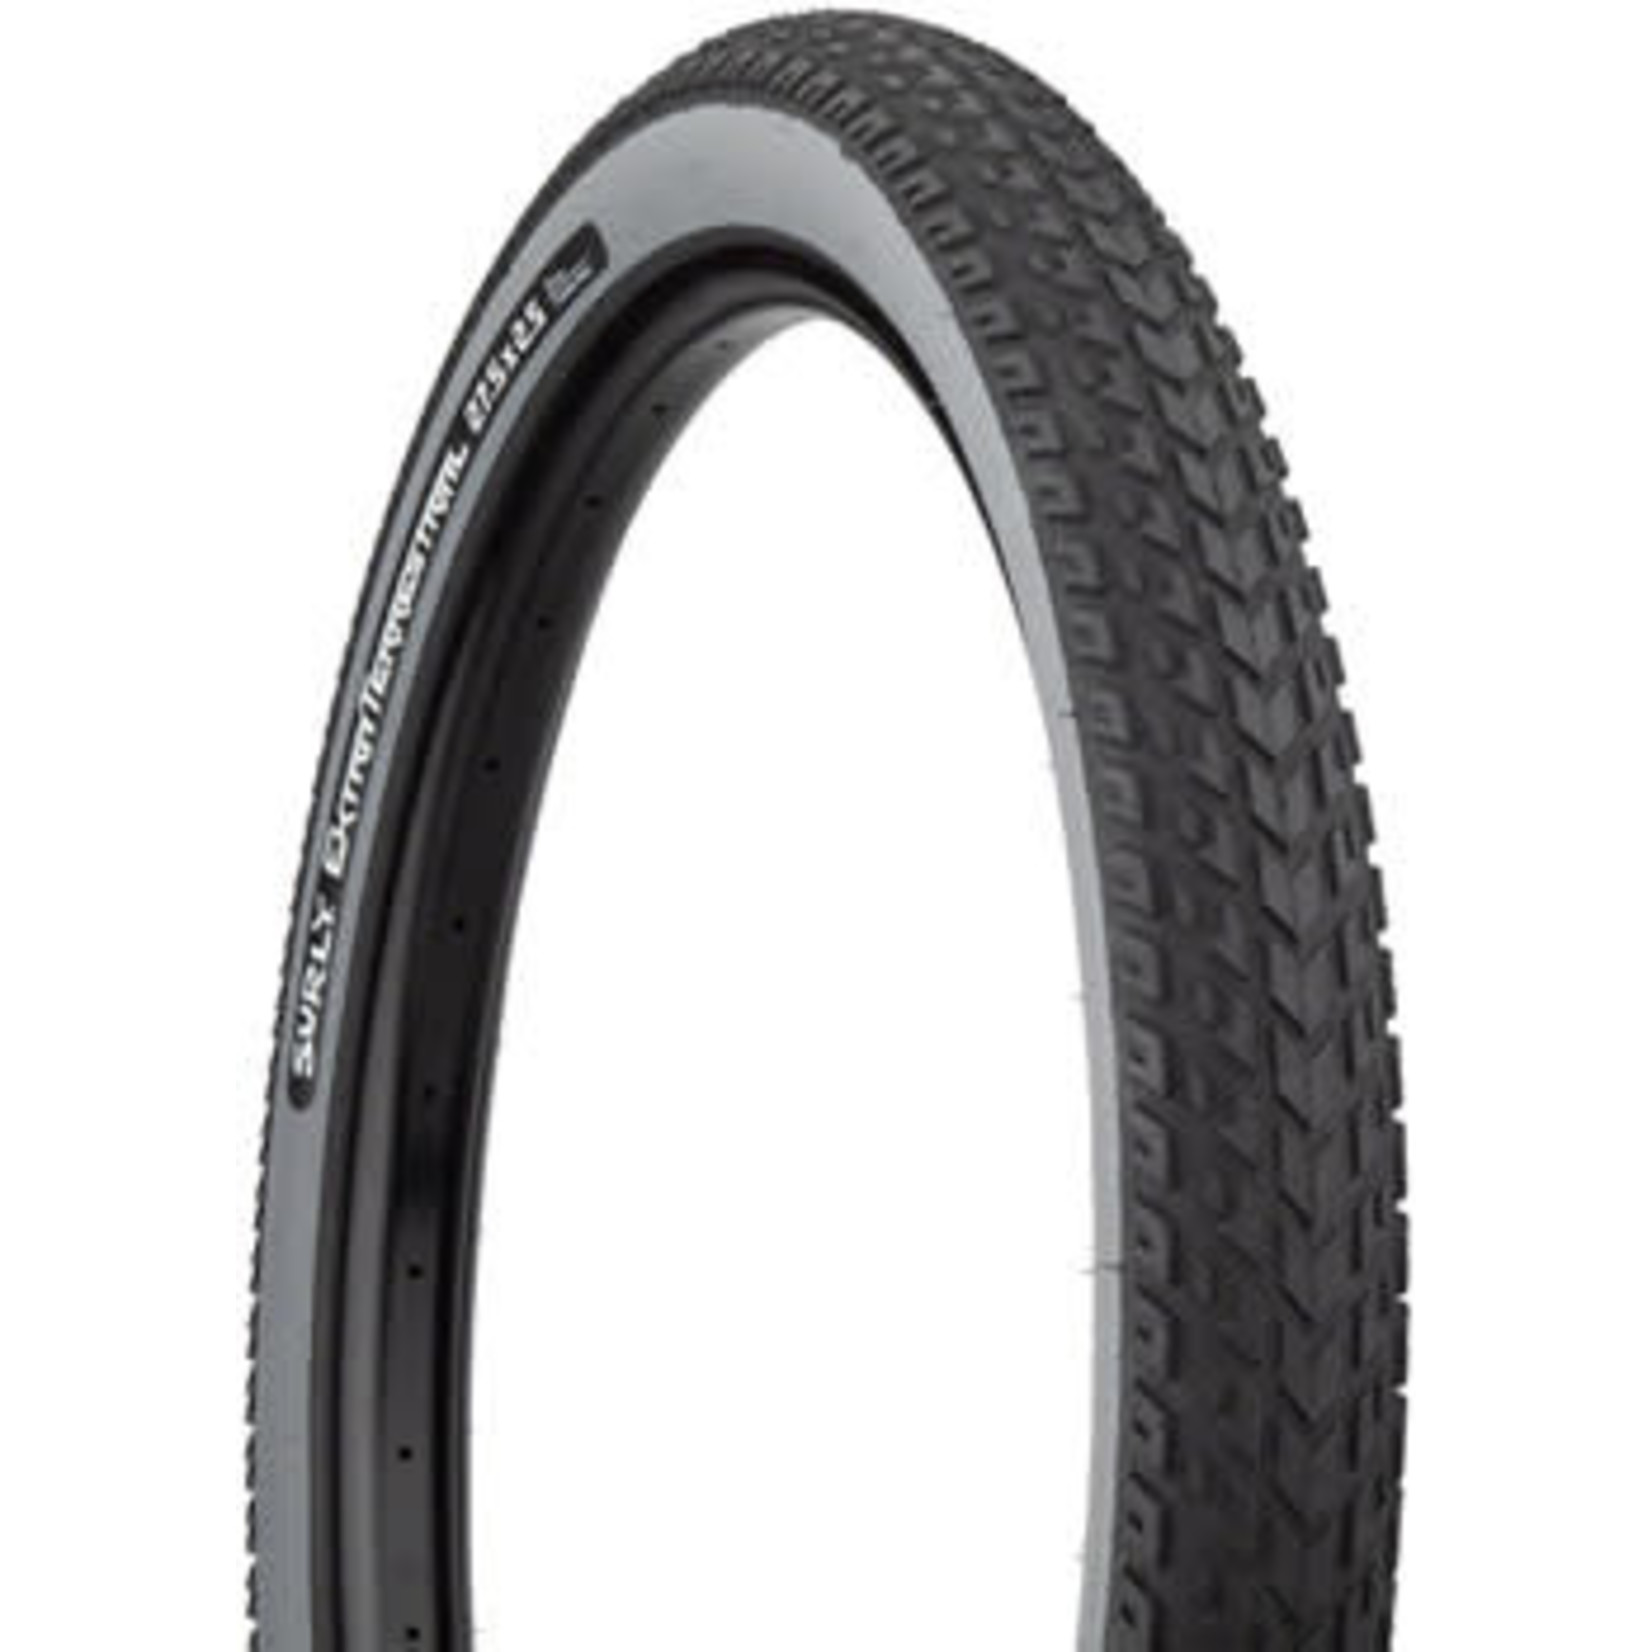 Surly Surly ExtraTerrestrial  Tire - 27.5 x 2.5, Tubeless, Folding, Black/Slate, 60tpi